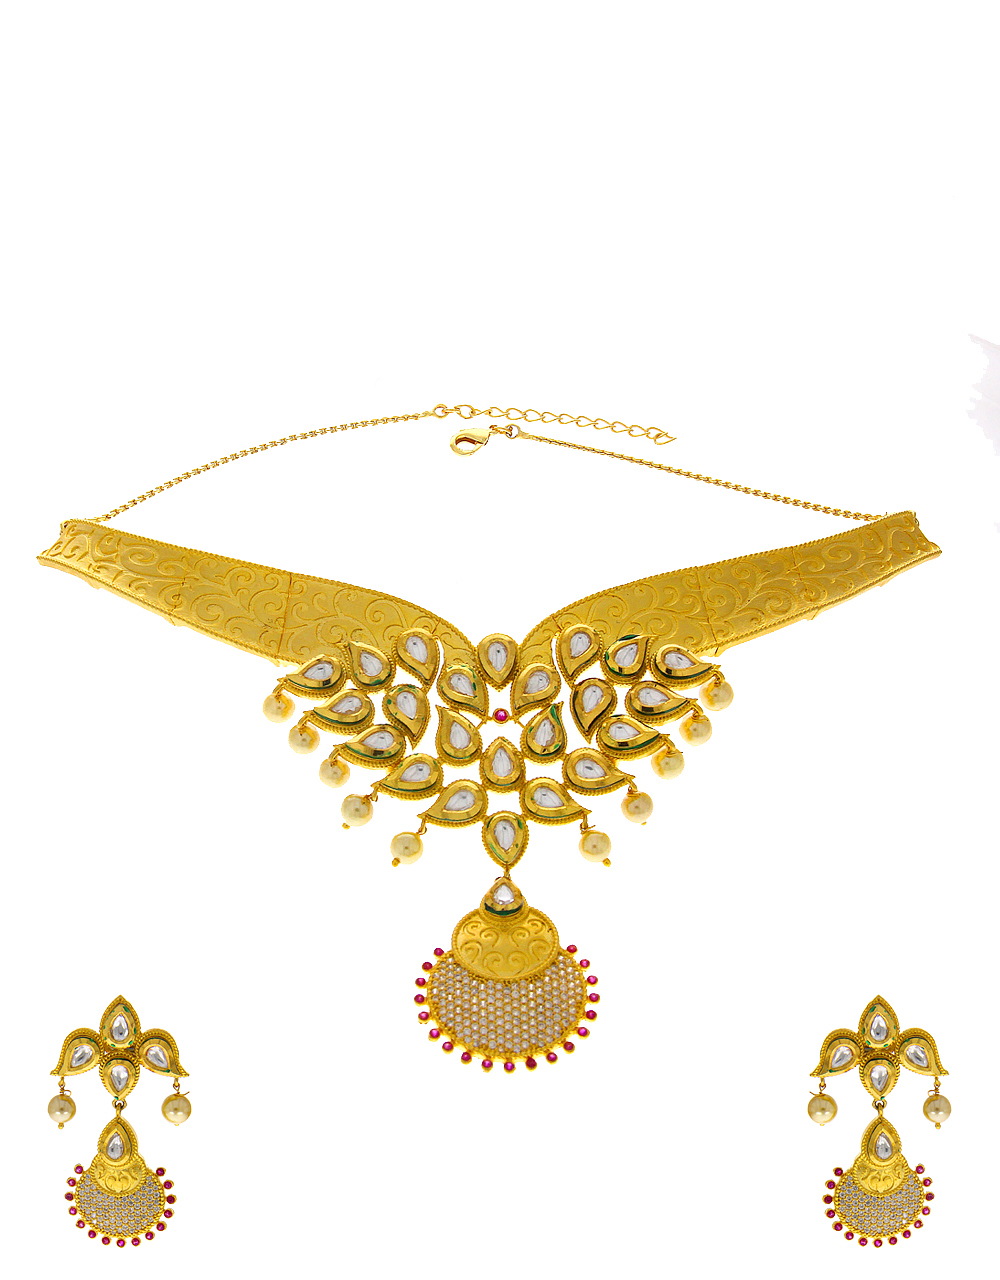 Matte Gold Finish Traditional Kundan Necklace Styled With Pearls Jewellery